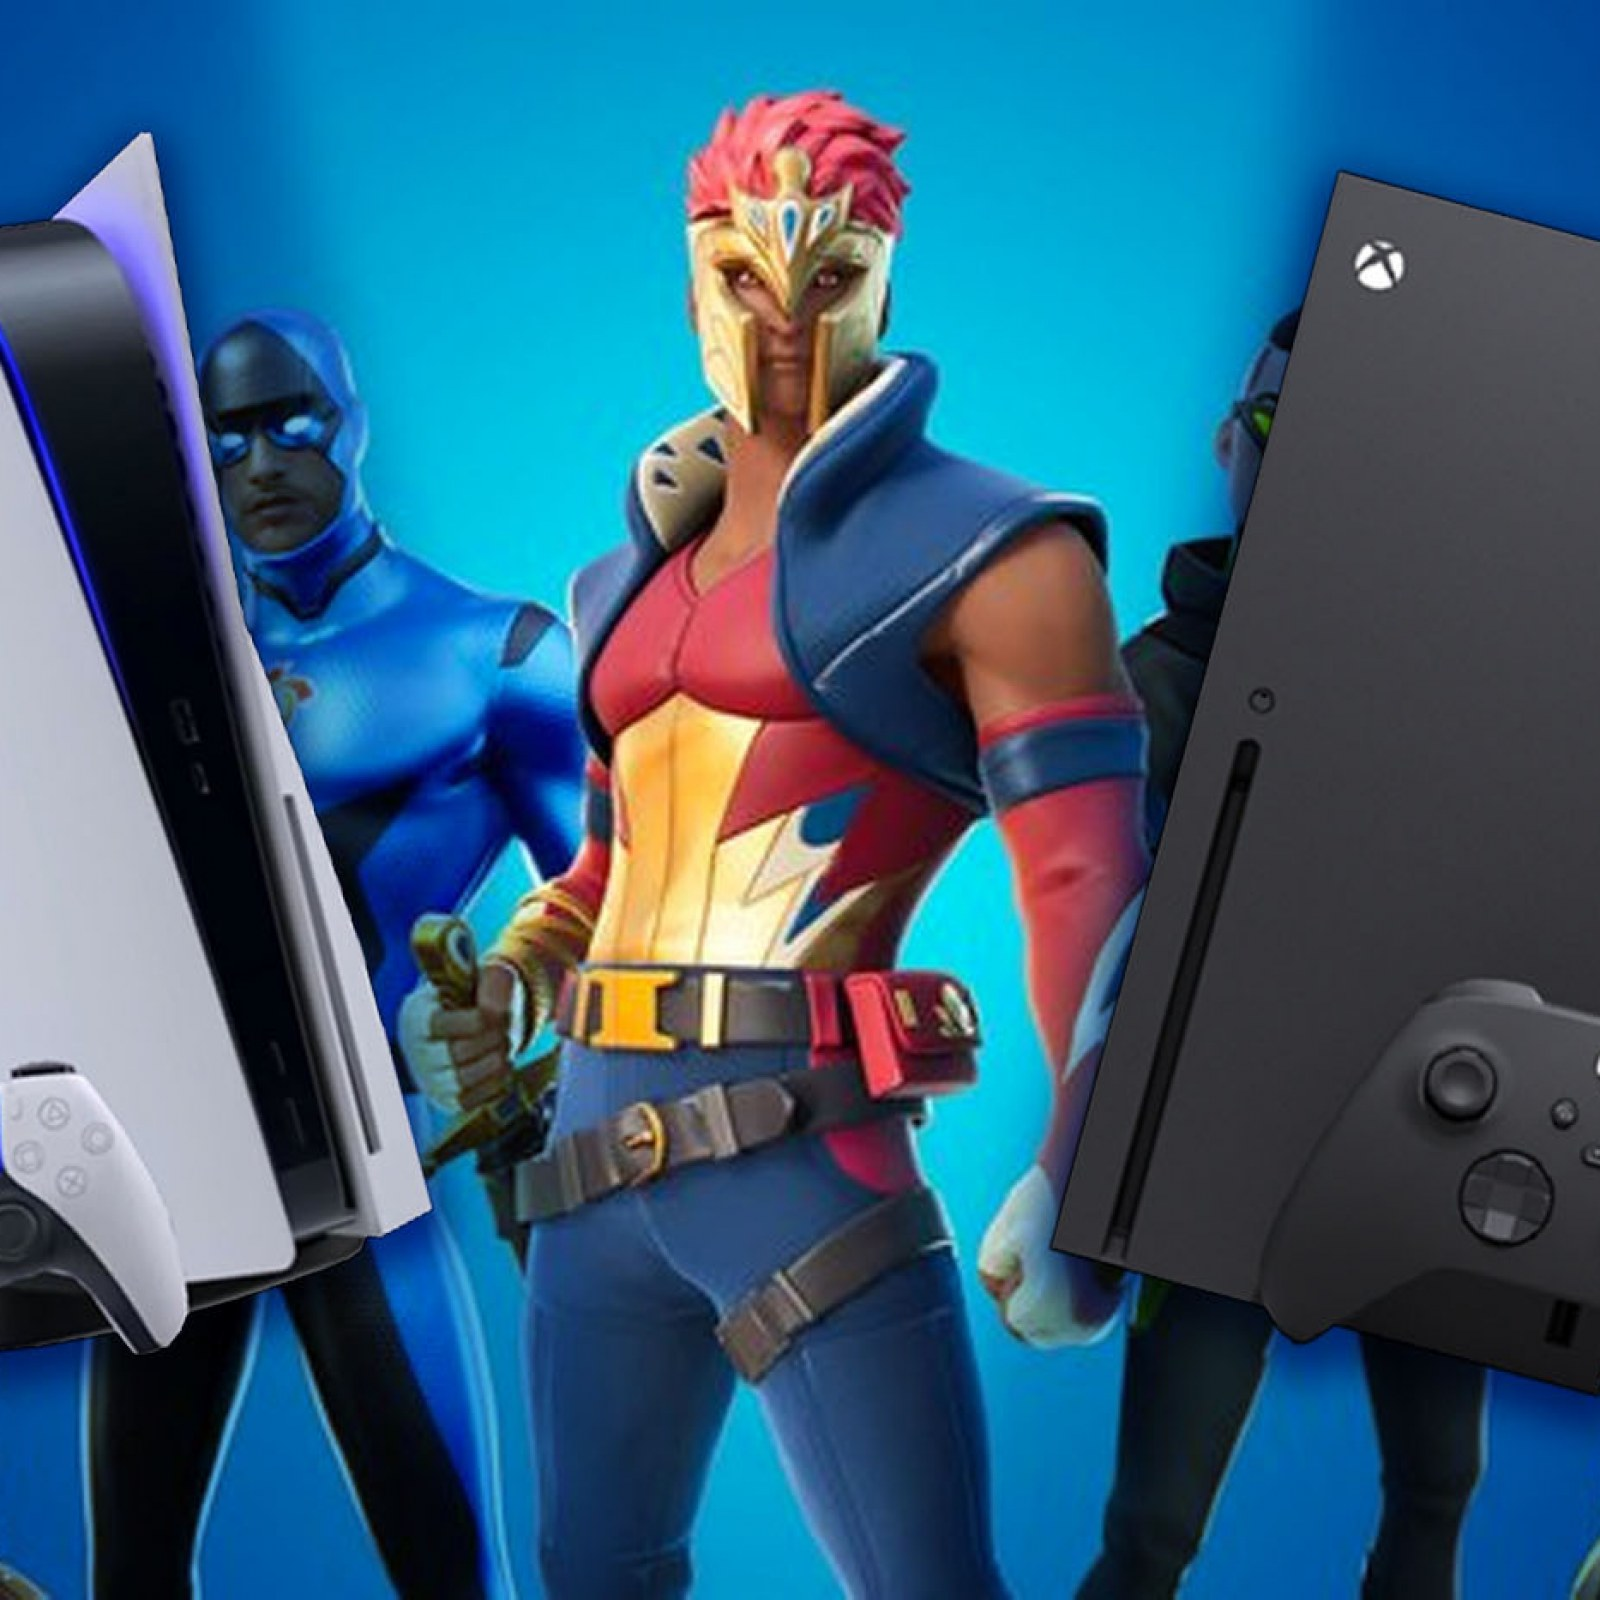 Fortnite Ps5 Xbox Series X Upgrades How To Transfer Progress Revealed